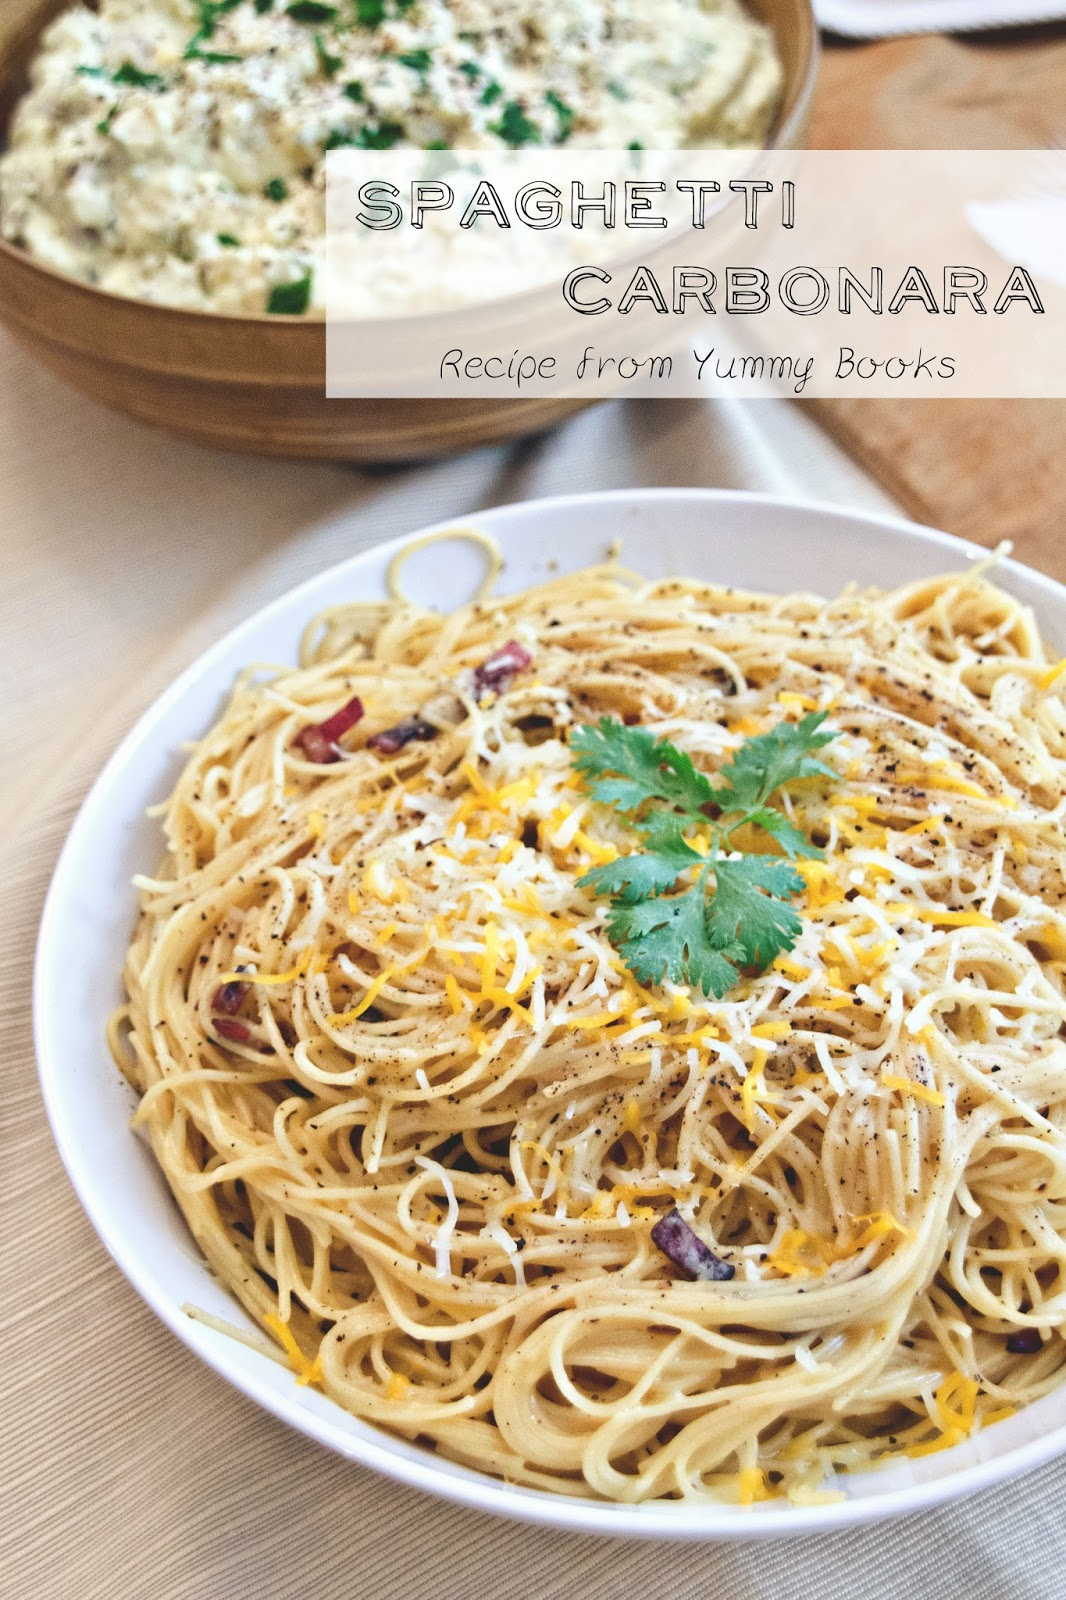 Spaghetti carbonara, yummy books, food for the goldfinch